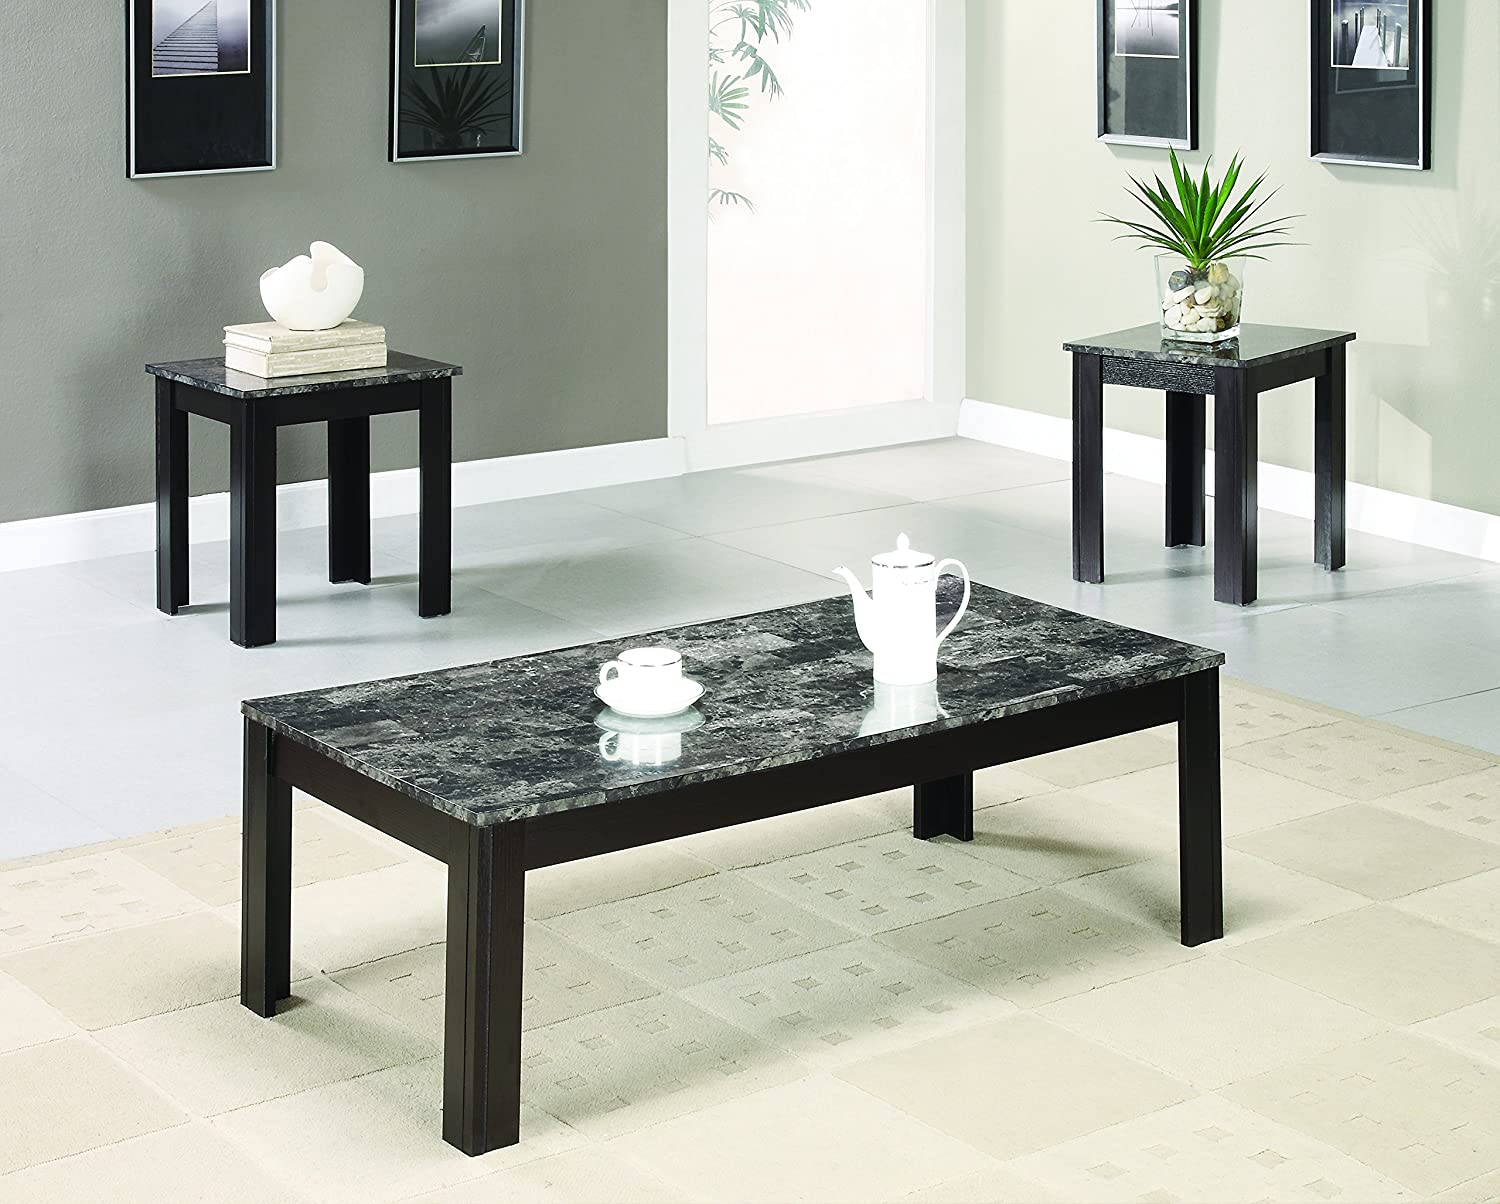 Coaster Fine Furniture 700395 3 Piece Coffee Table & End Table Set, Marble, Medium 700395ii